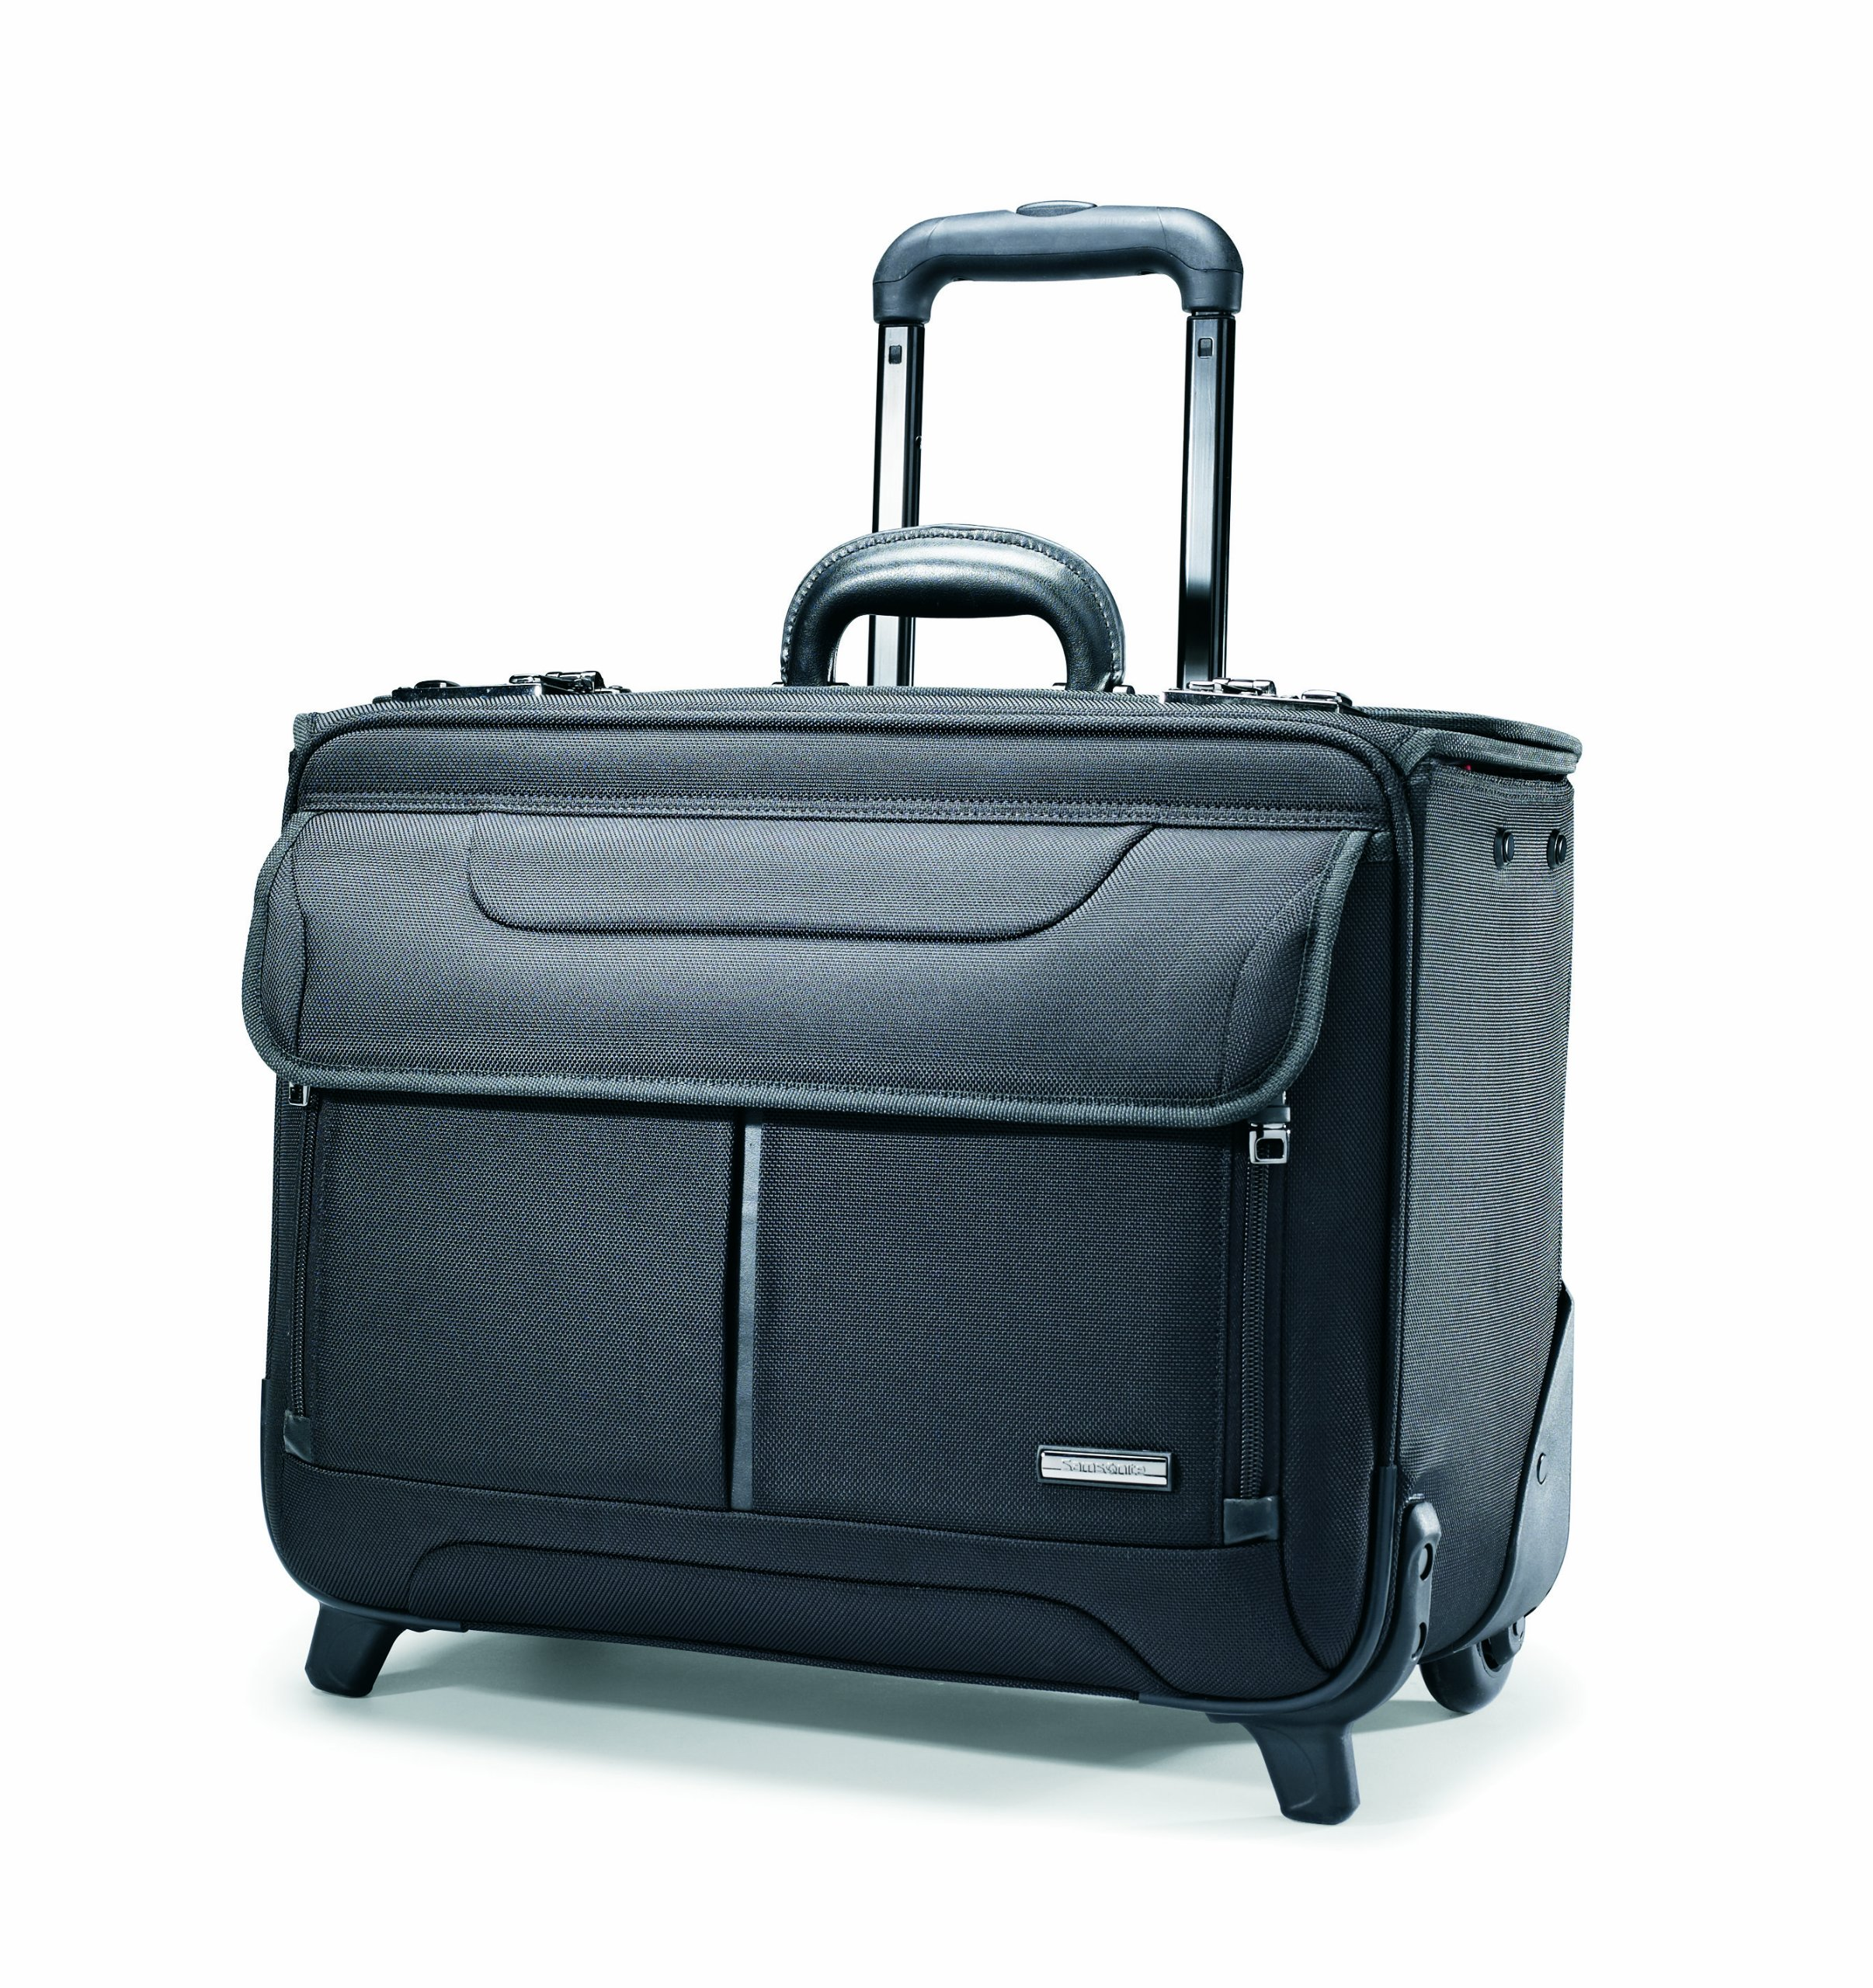 Samsonite Wheeled Catalog Case, 17-1/4 x 7-1/2 x 13 Inches, Black (458311041)